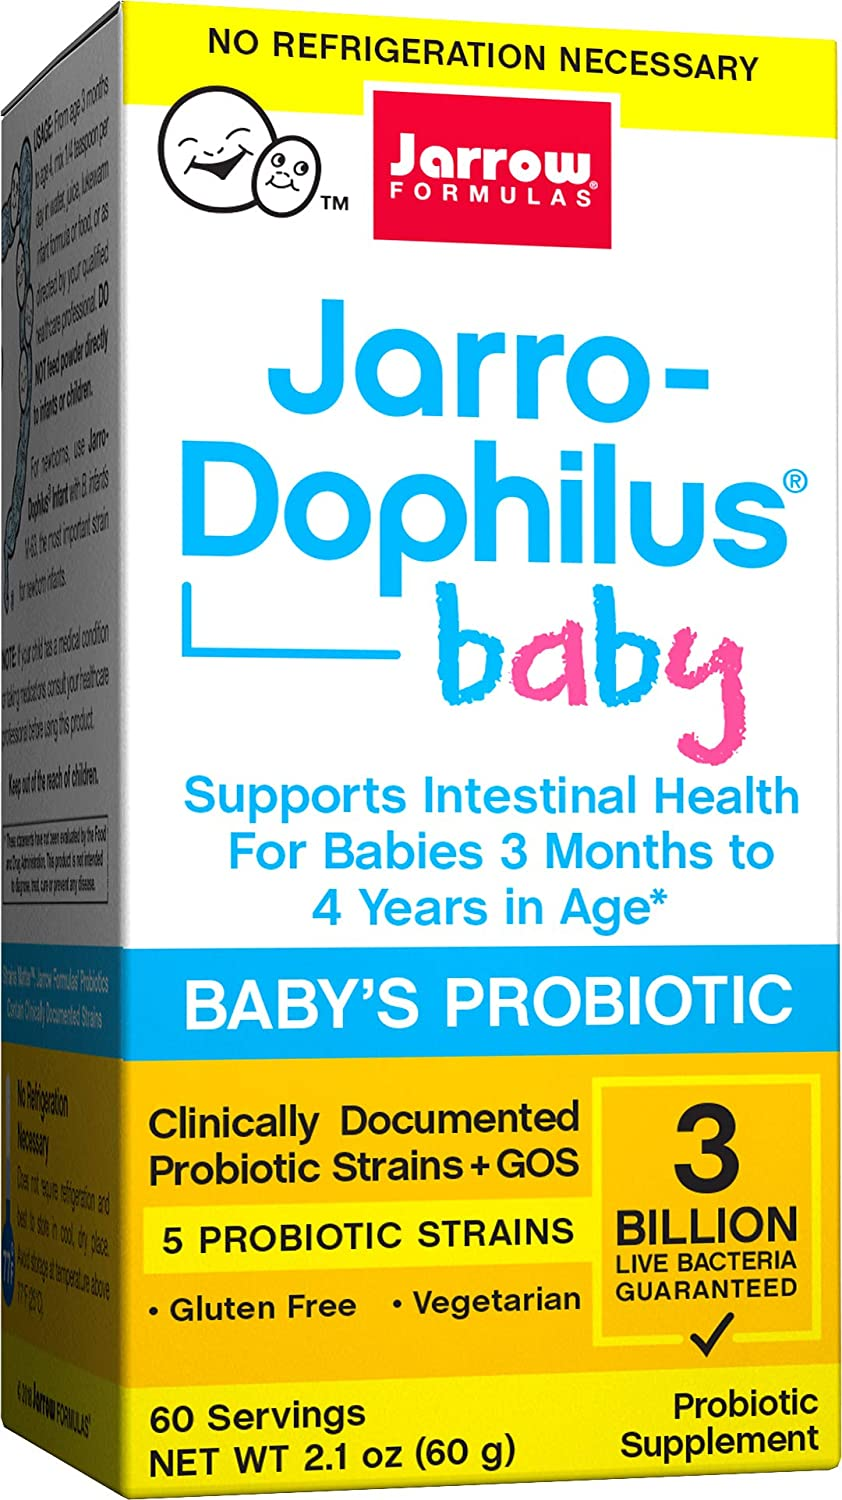 Jarrow Formulas Jarro-Dophilus Baby, Supports Intestinal Health for Babies 3 Months to 4 Years in Age, 3 Billion Cells, 60 Servings